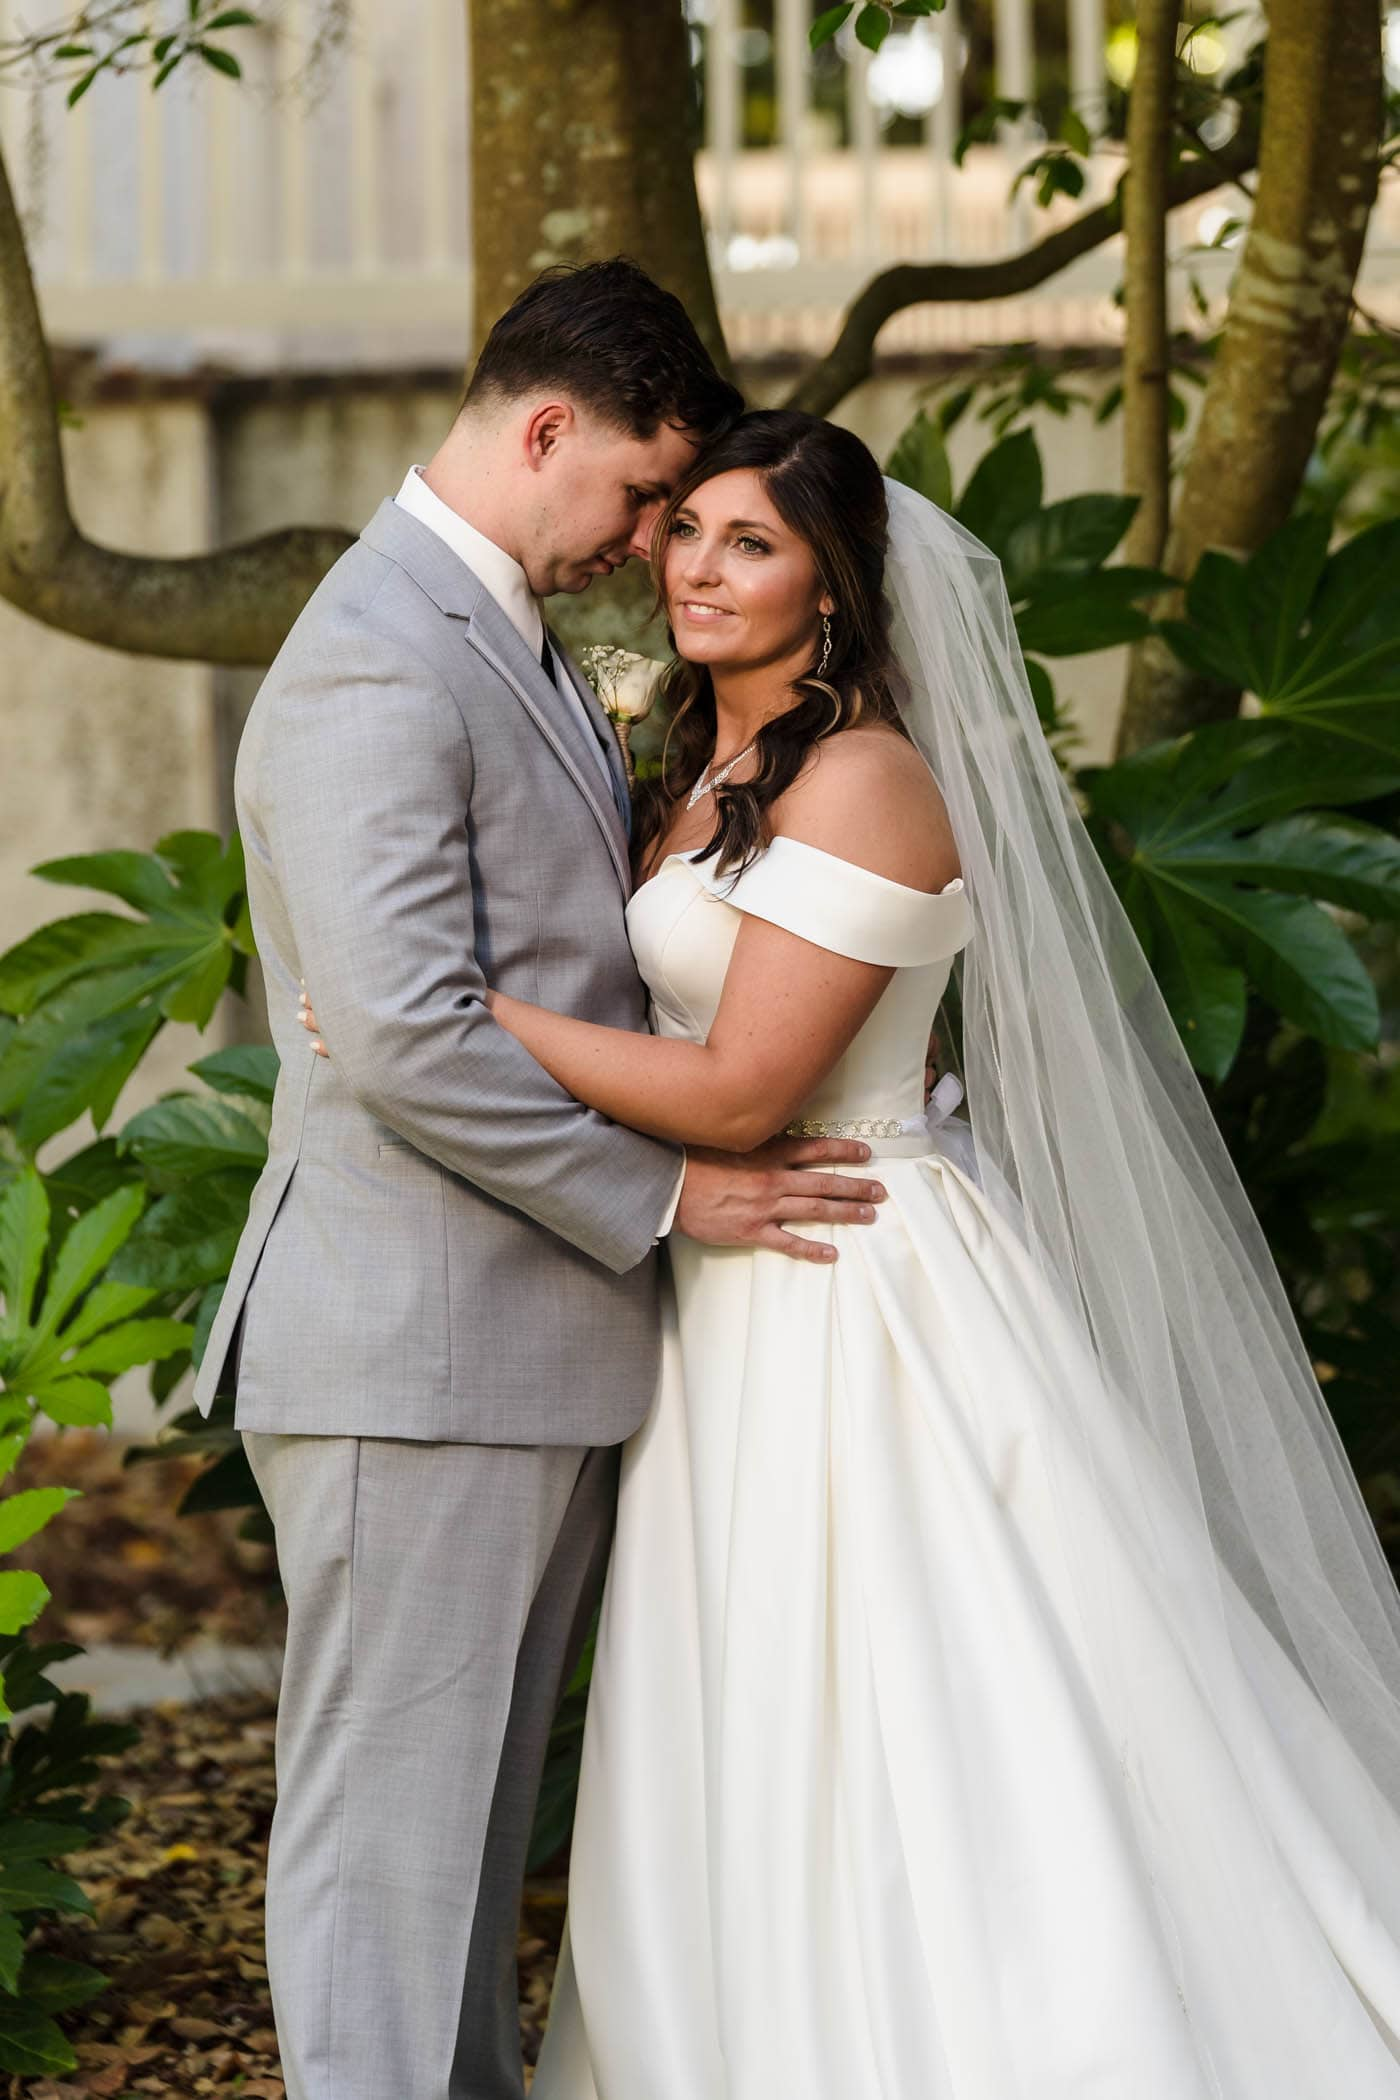 Bride and groom portrait by Susan DeLoach Photography SC wedding photographers